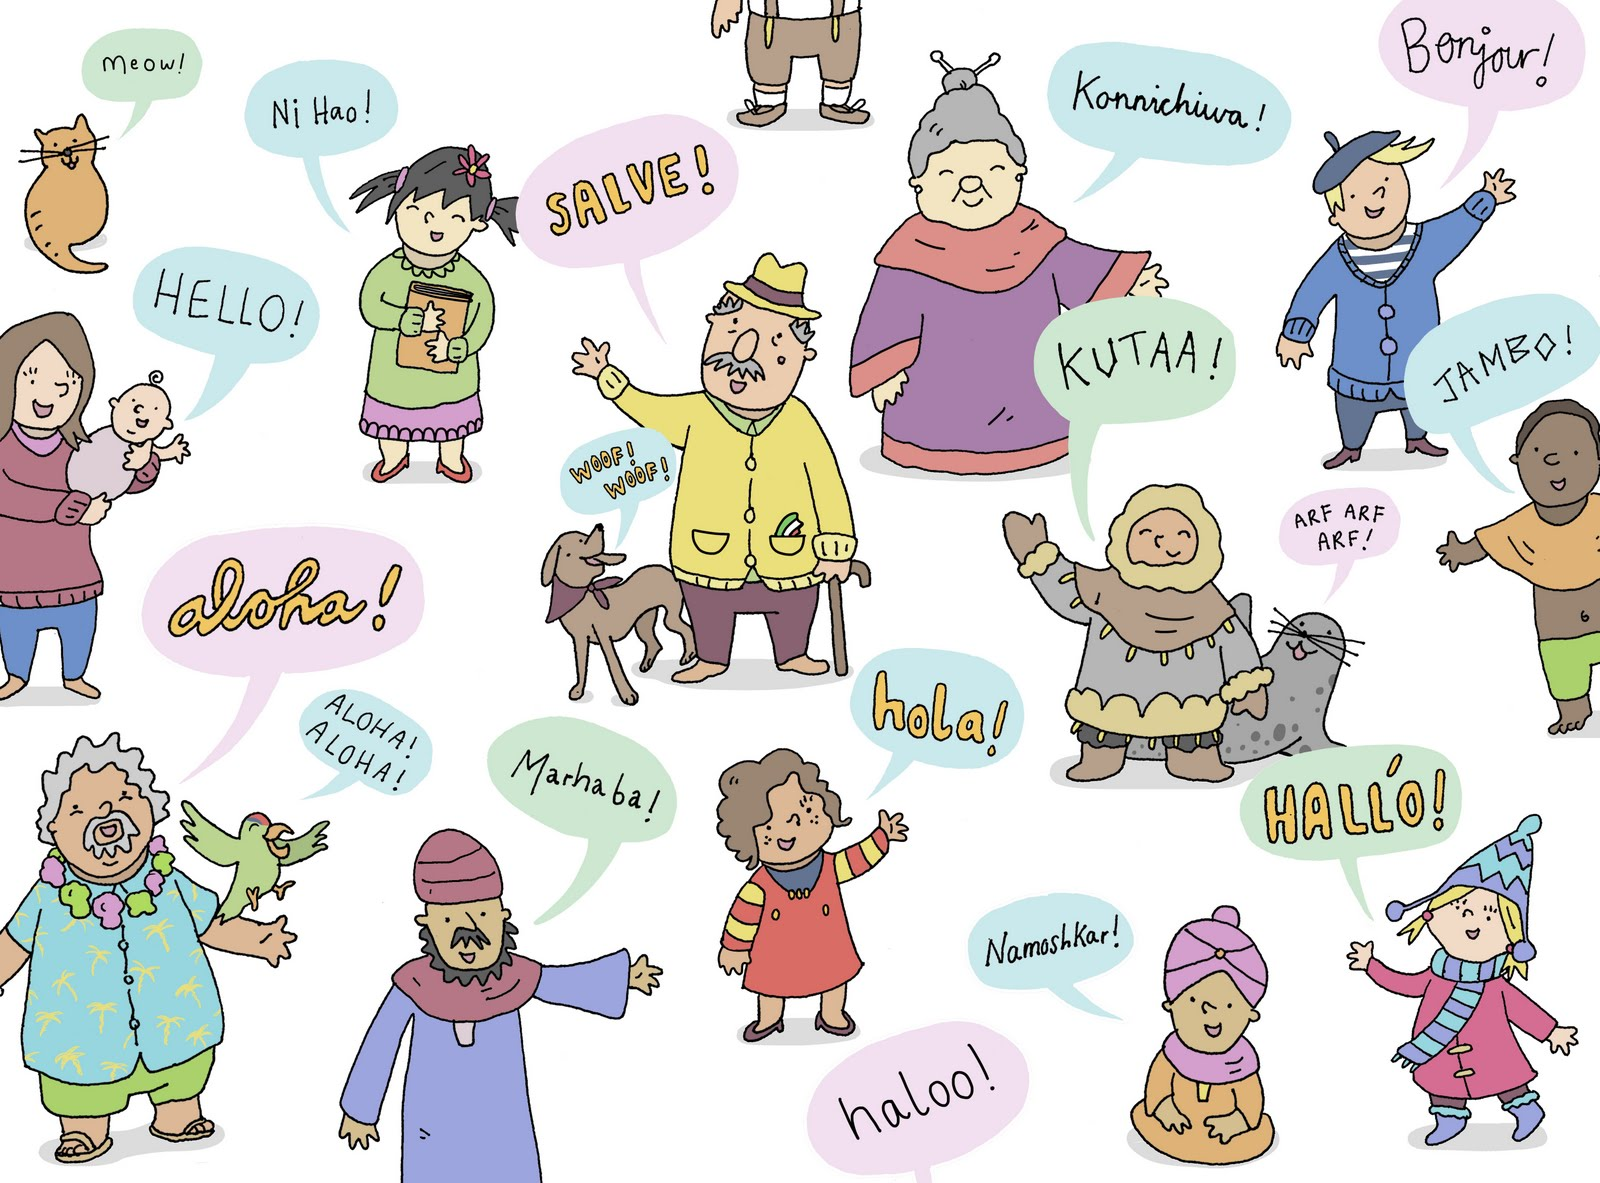 How does an unschooling family learn new languages?